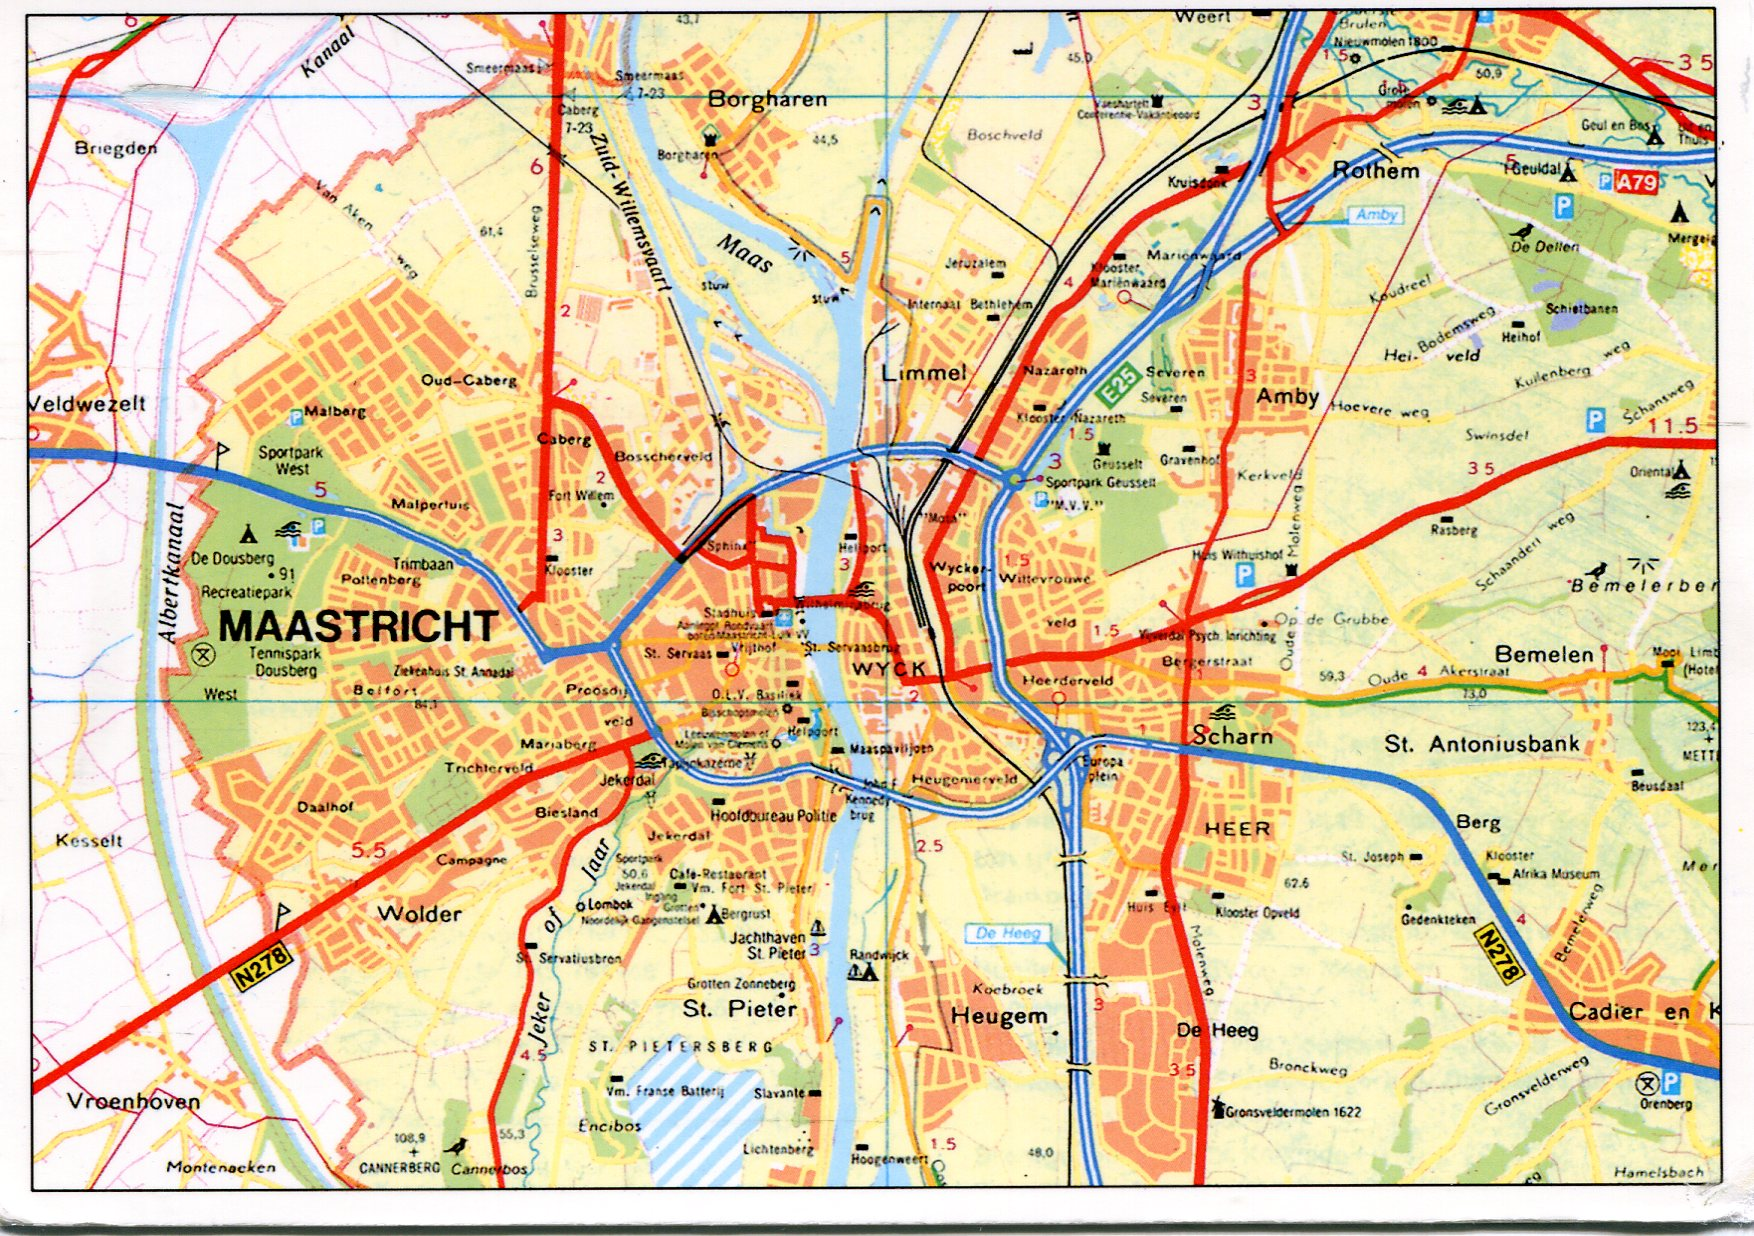 Plattegrond Maastricht Maastricht, Netherlands Map | Remembering Letters And